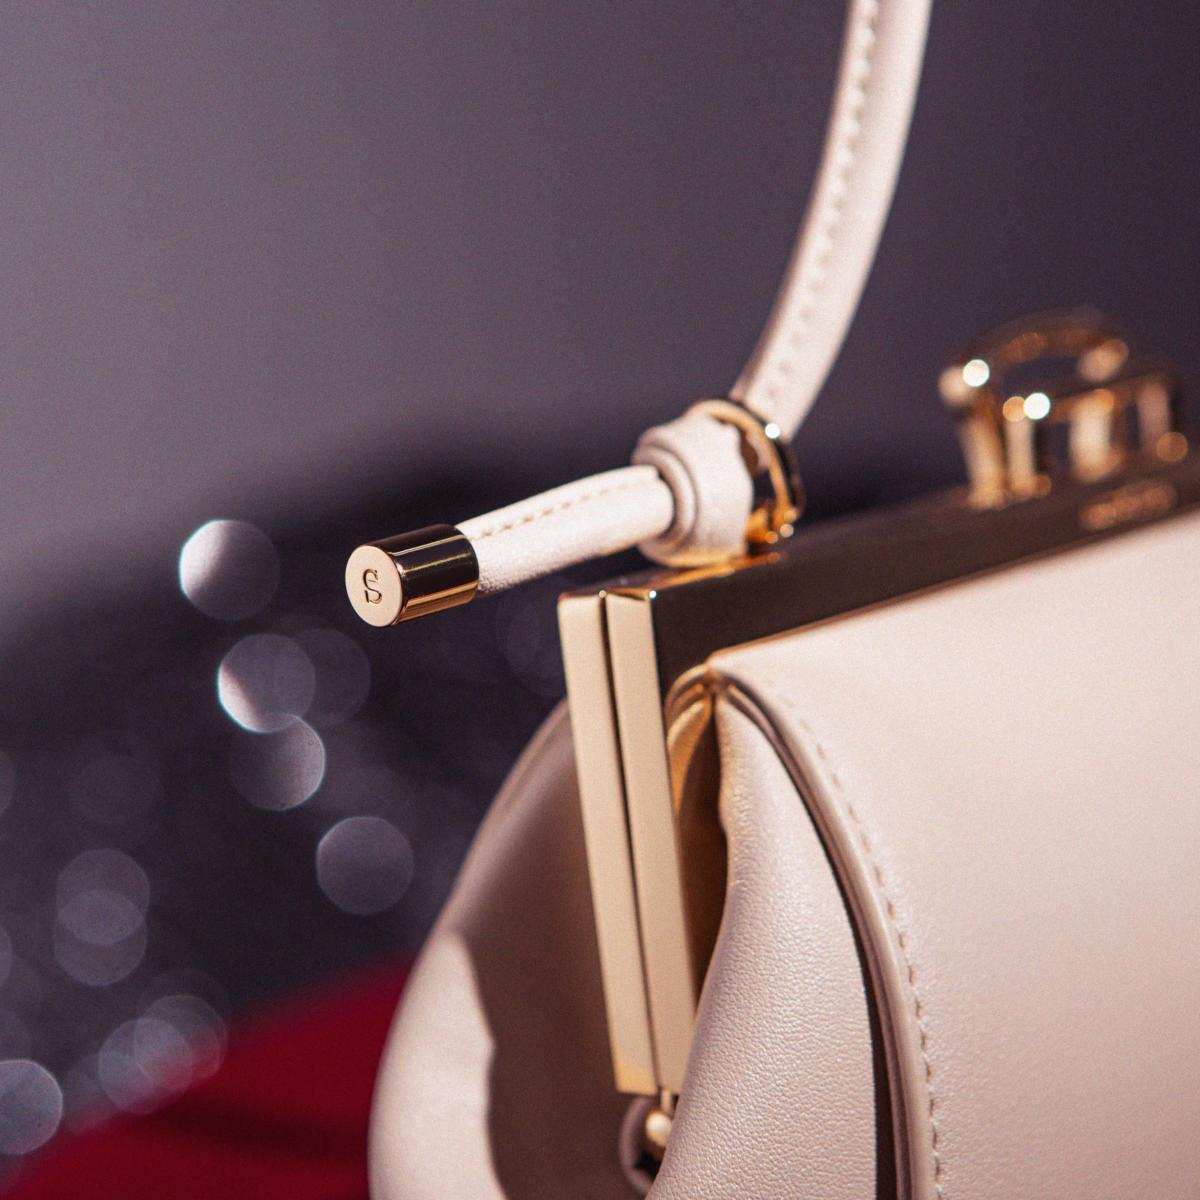 Close up of the Lofarclutch new features, knotted and flexible strap